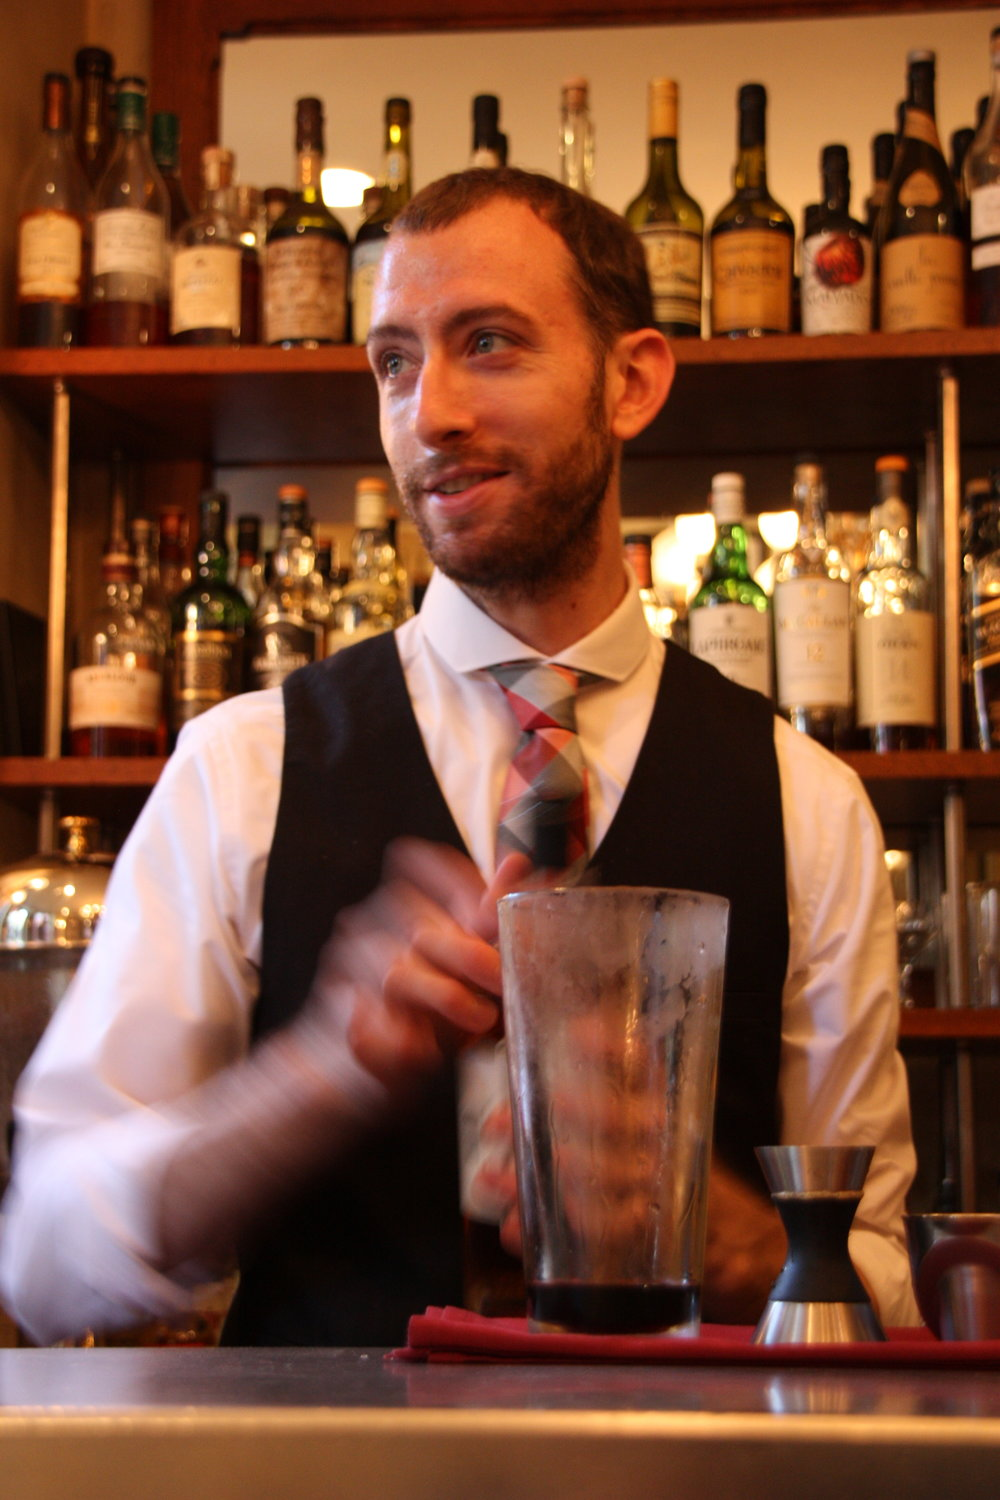 Rory Caviness    La Joie De Vivre  1.25 oz. Wolfberger Amer Fleur De Joie .75 oz. Ransom Old Tom Gin .25 Ardbeg 10 Single Malt Scotch 1 dash Bitter Truth Jerry Thomas' Own  Smoke lemon twist and a half cinnamon slick over a stone surface with a torch. Place a chilled old fashioned glass over top and let the aromatics fill the glass. Stir above ingredients over ice to chill, then strain into glass over on large ice cube.    Peaky Blinders  .75 oz Wolfamer  .75 oz Mad River Rye Whiskey .50 oz La Quintinye Rouge Vermouth .25 oz Fernet Branca 2 dashes Bittermen's Xocolatl Mole   Stir above ingredients with ice, then strain into a really old fashioned glass.   Created by Rory Caviness for La Voile Boston, Massachusetts Photo: Connor Button